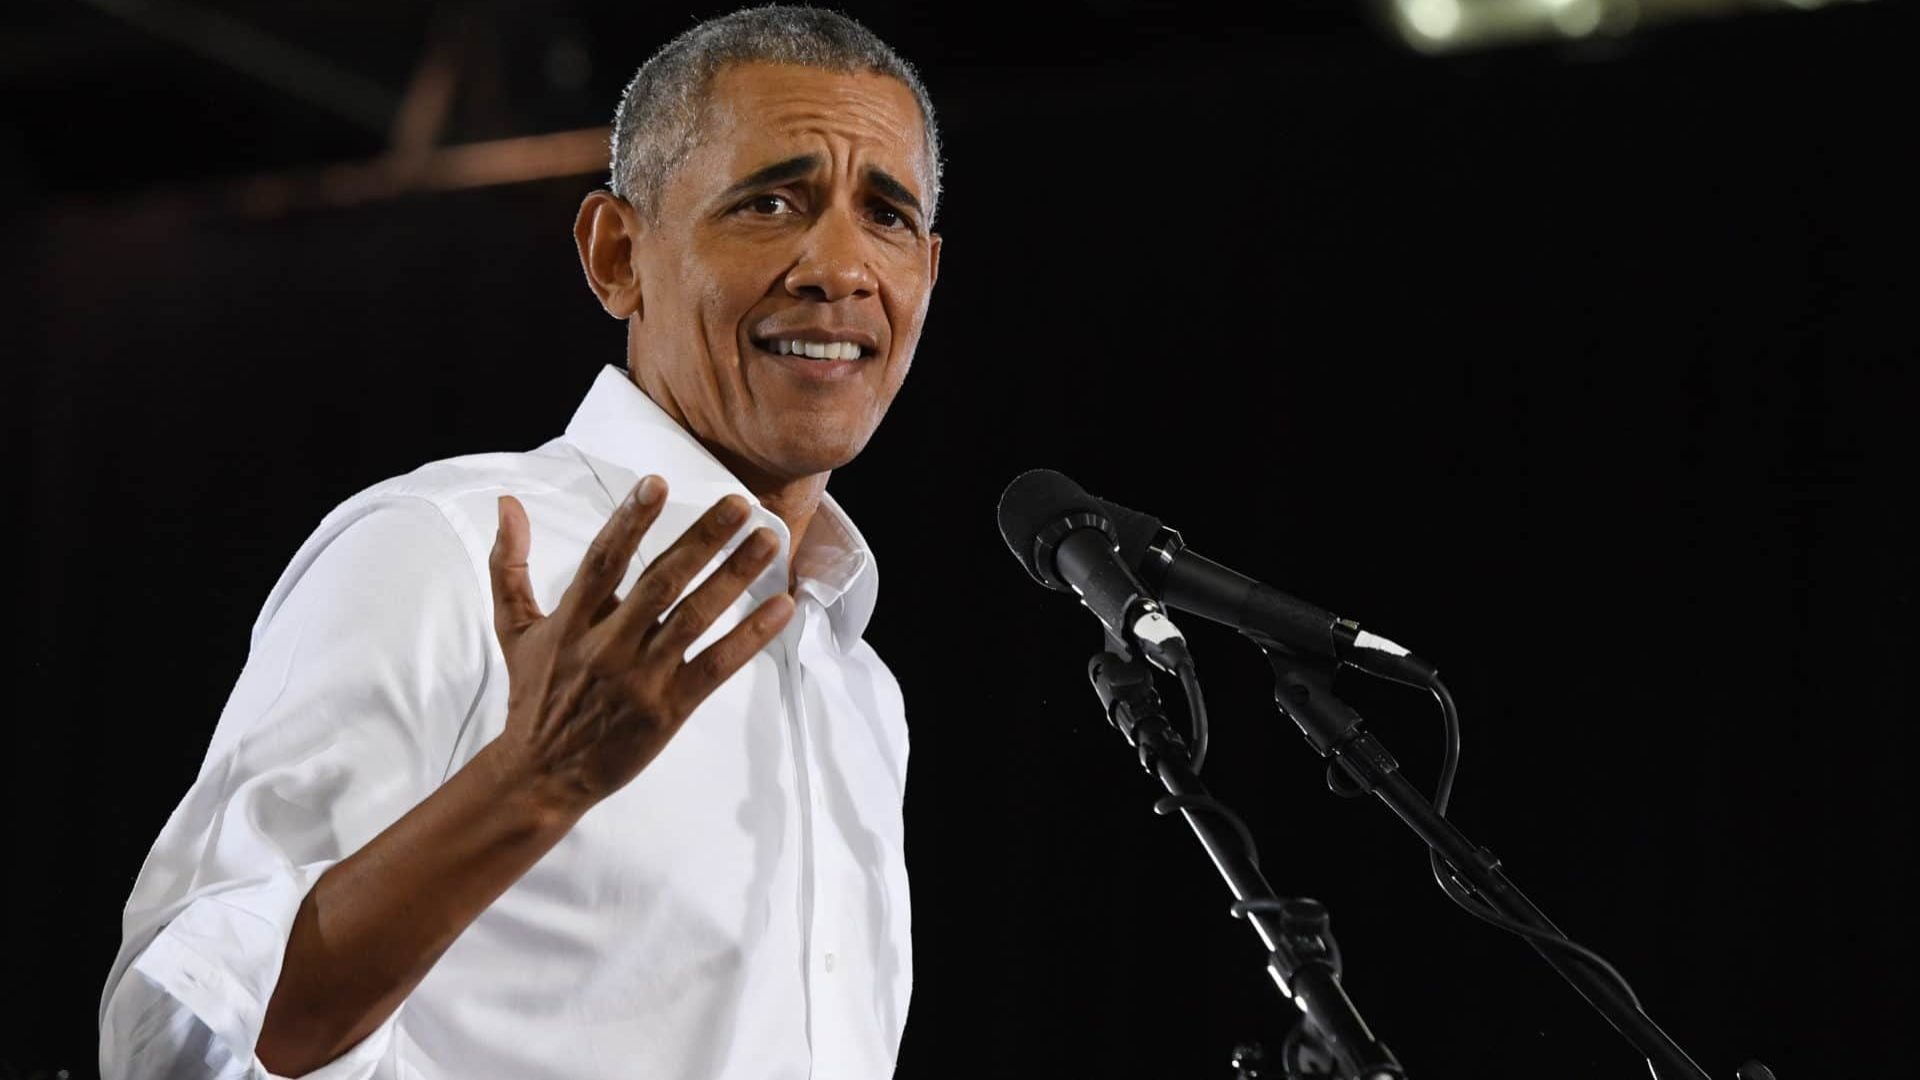 Barack Obama Headed To Georgia To Stump For Stacey Abrams